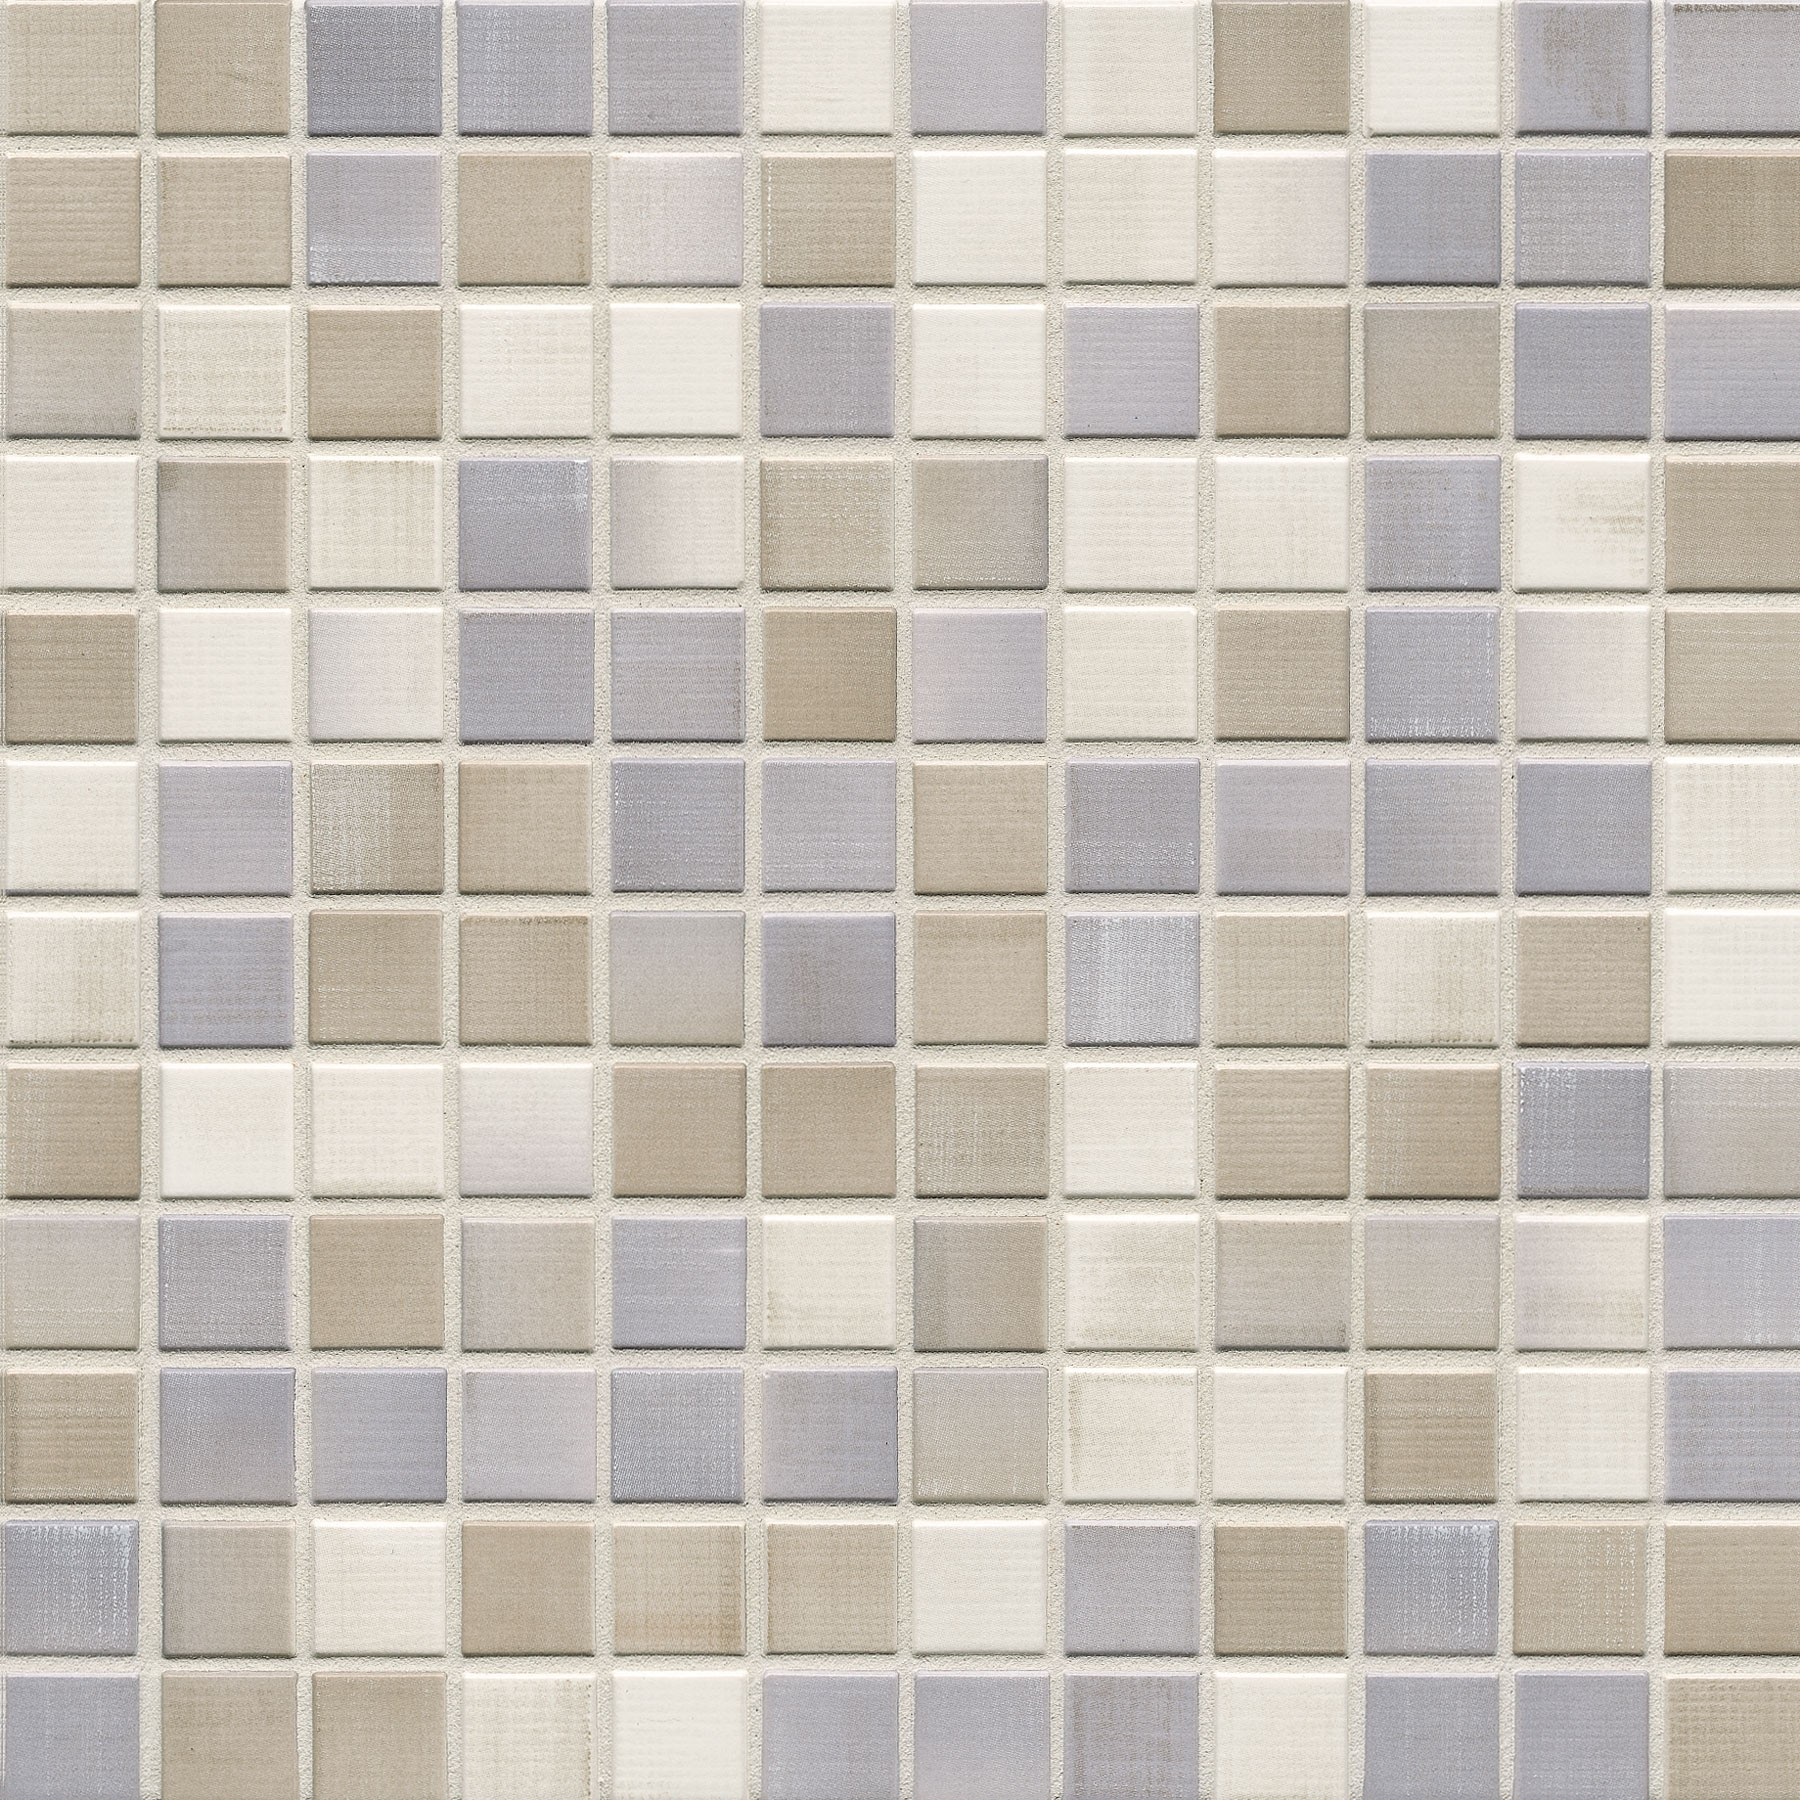 Jasba HIGHLANDS cloudy white mix 24x24x6,5 mm 6590H